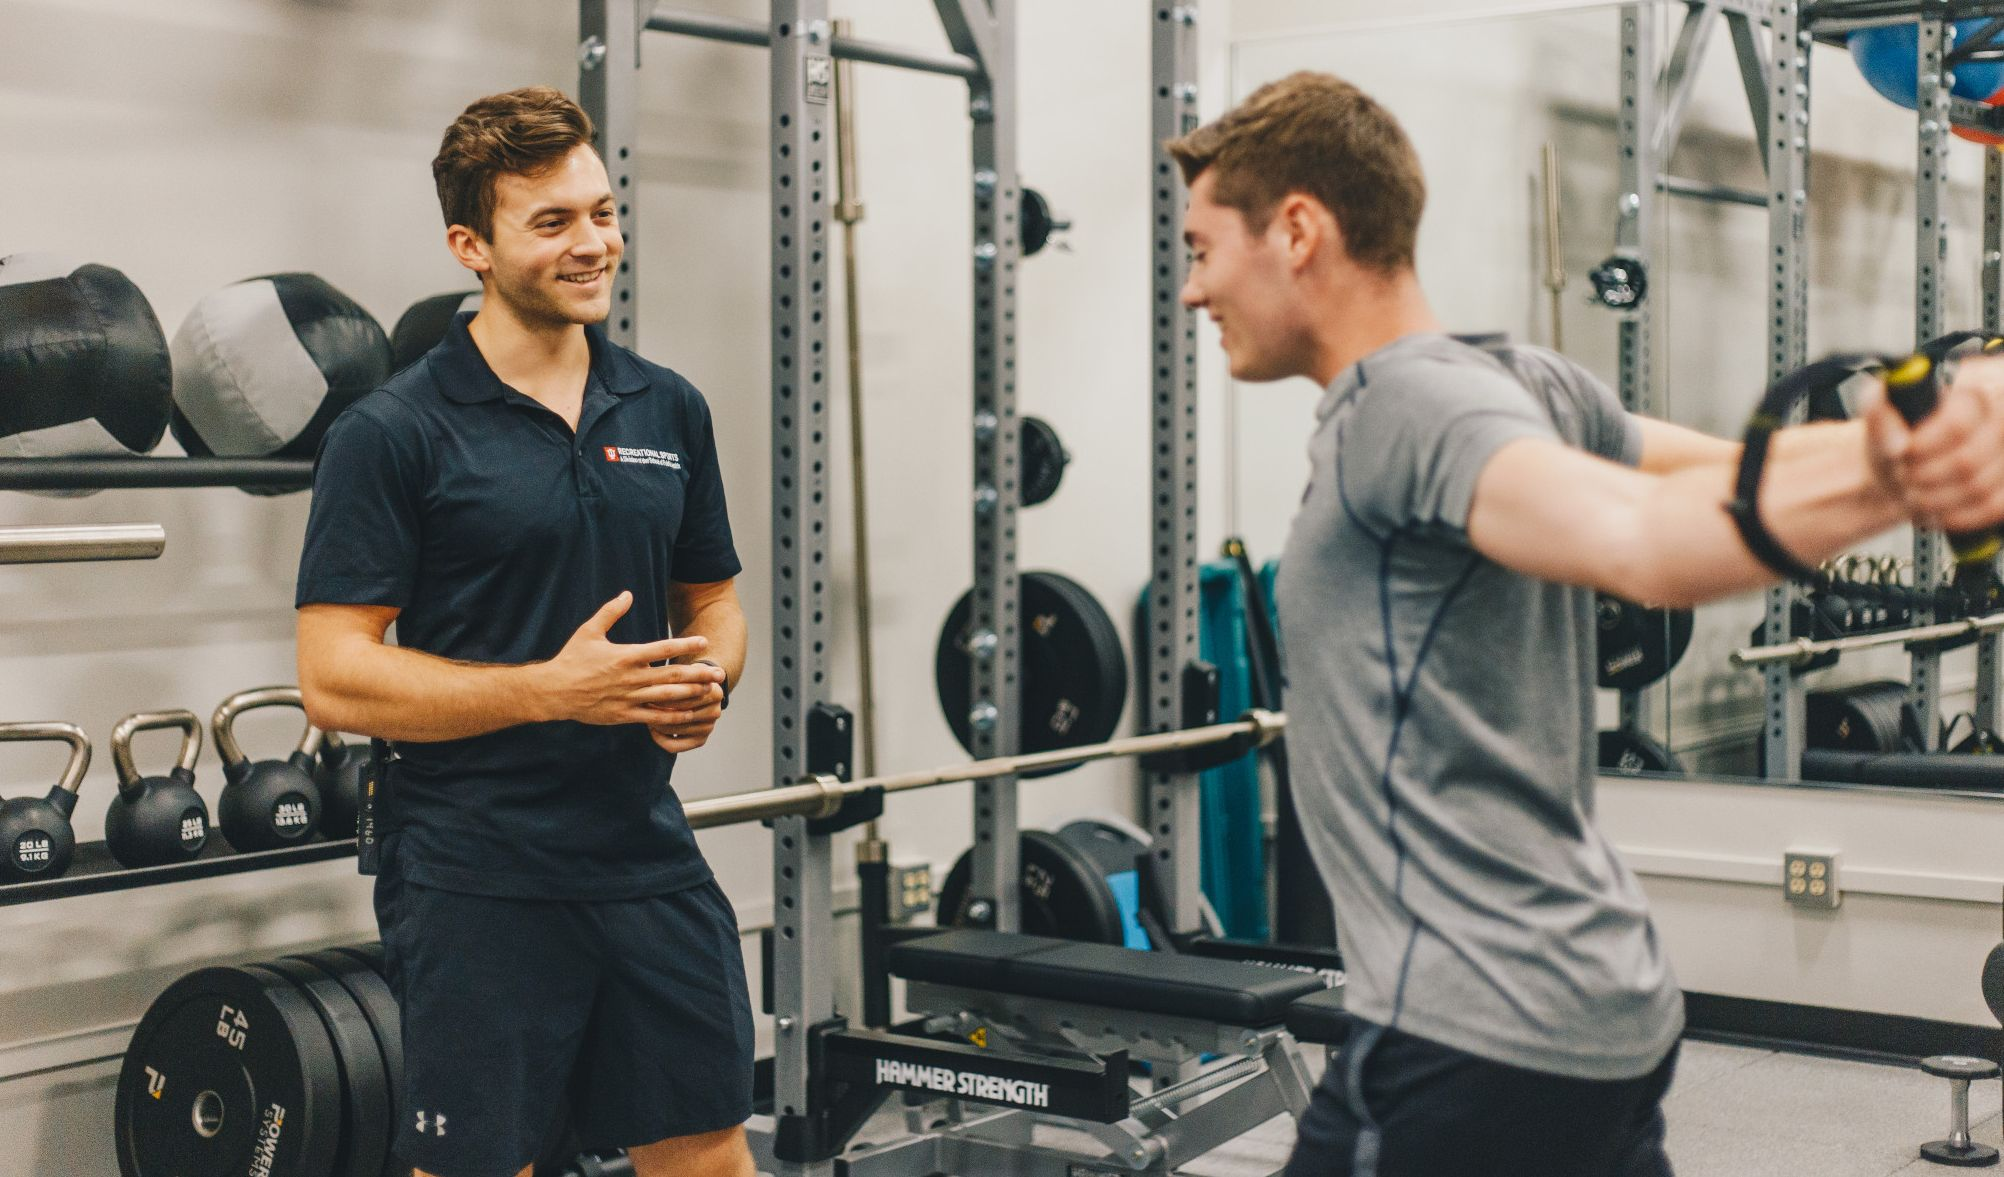 A personal trainer assists a client with a workout